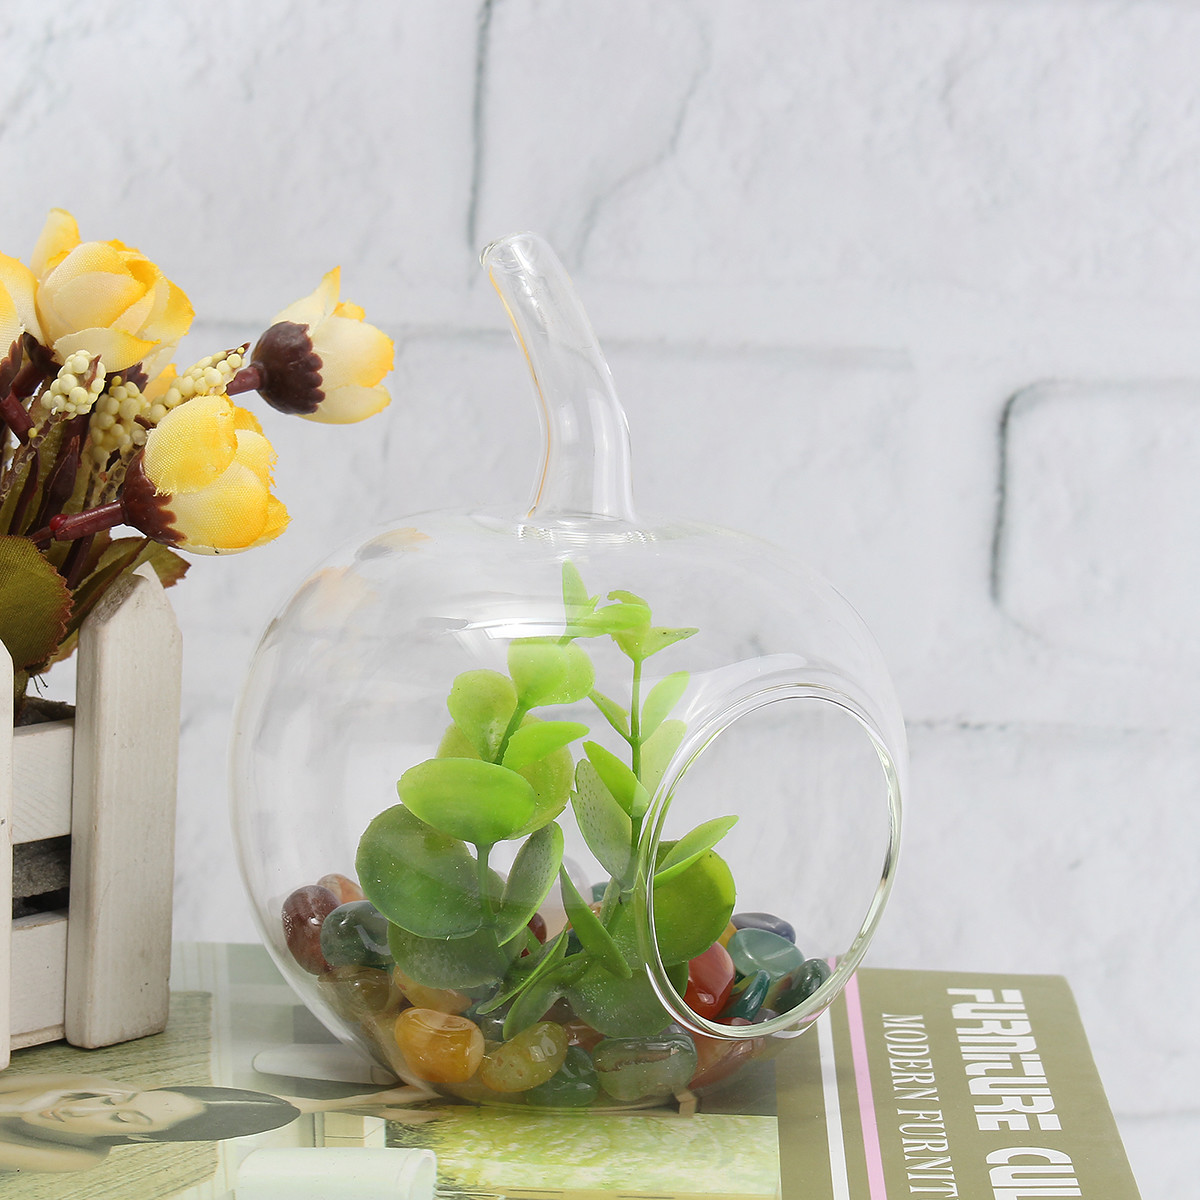 floral vases and containers wholesale of crystal glass flower vase terrarium container micro landscape glass within crystal glass flower vase terrarium container micro landscape glass bottles decor